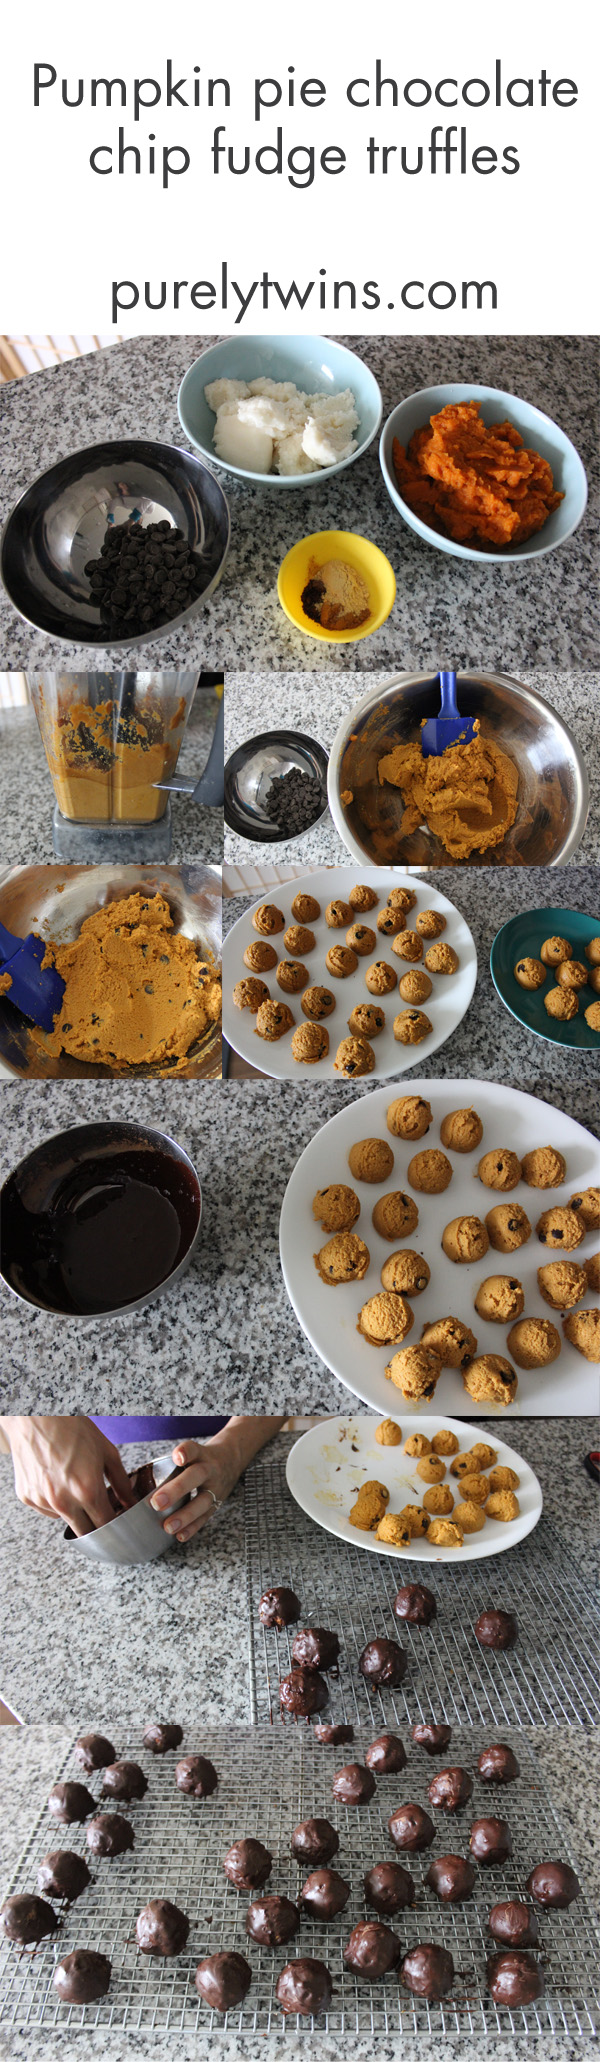 Gluten-free, vegan, low sugar pumpkin pie chocolate chip fudge truffle recipe. A fun and healthy dessert recipe to make for Halloween or fall.